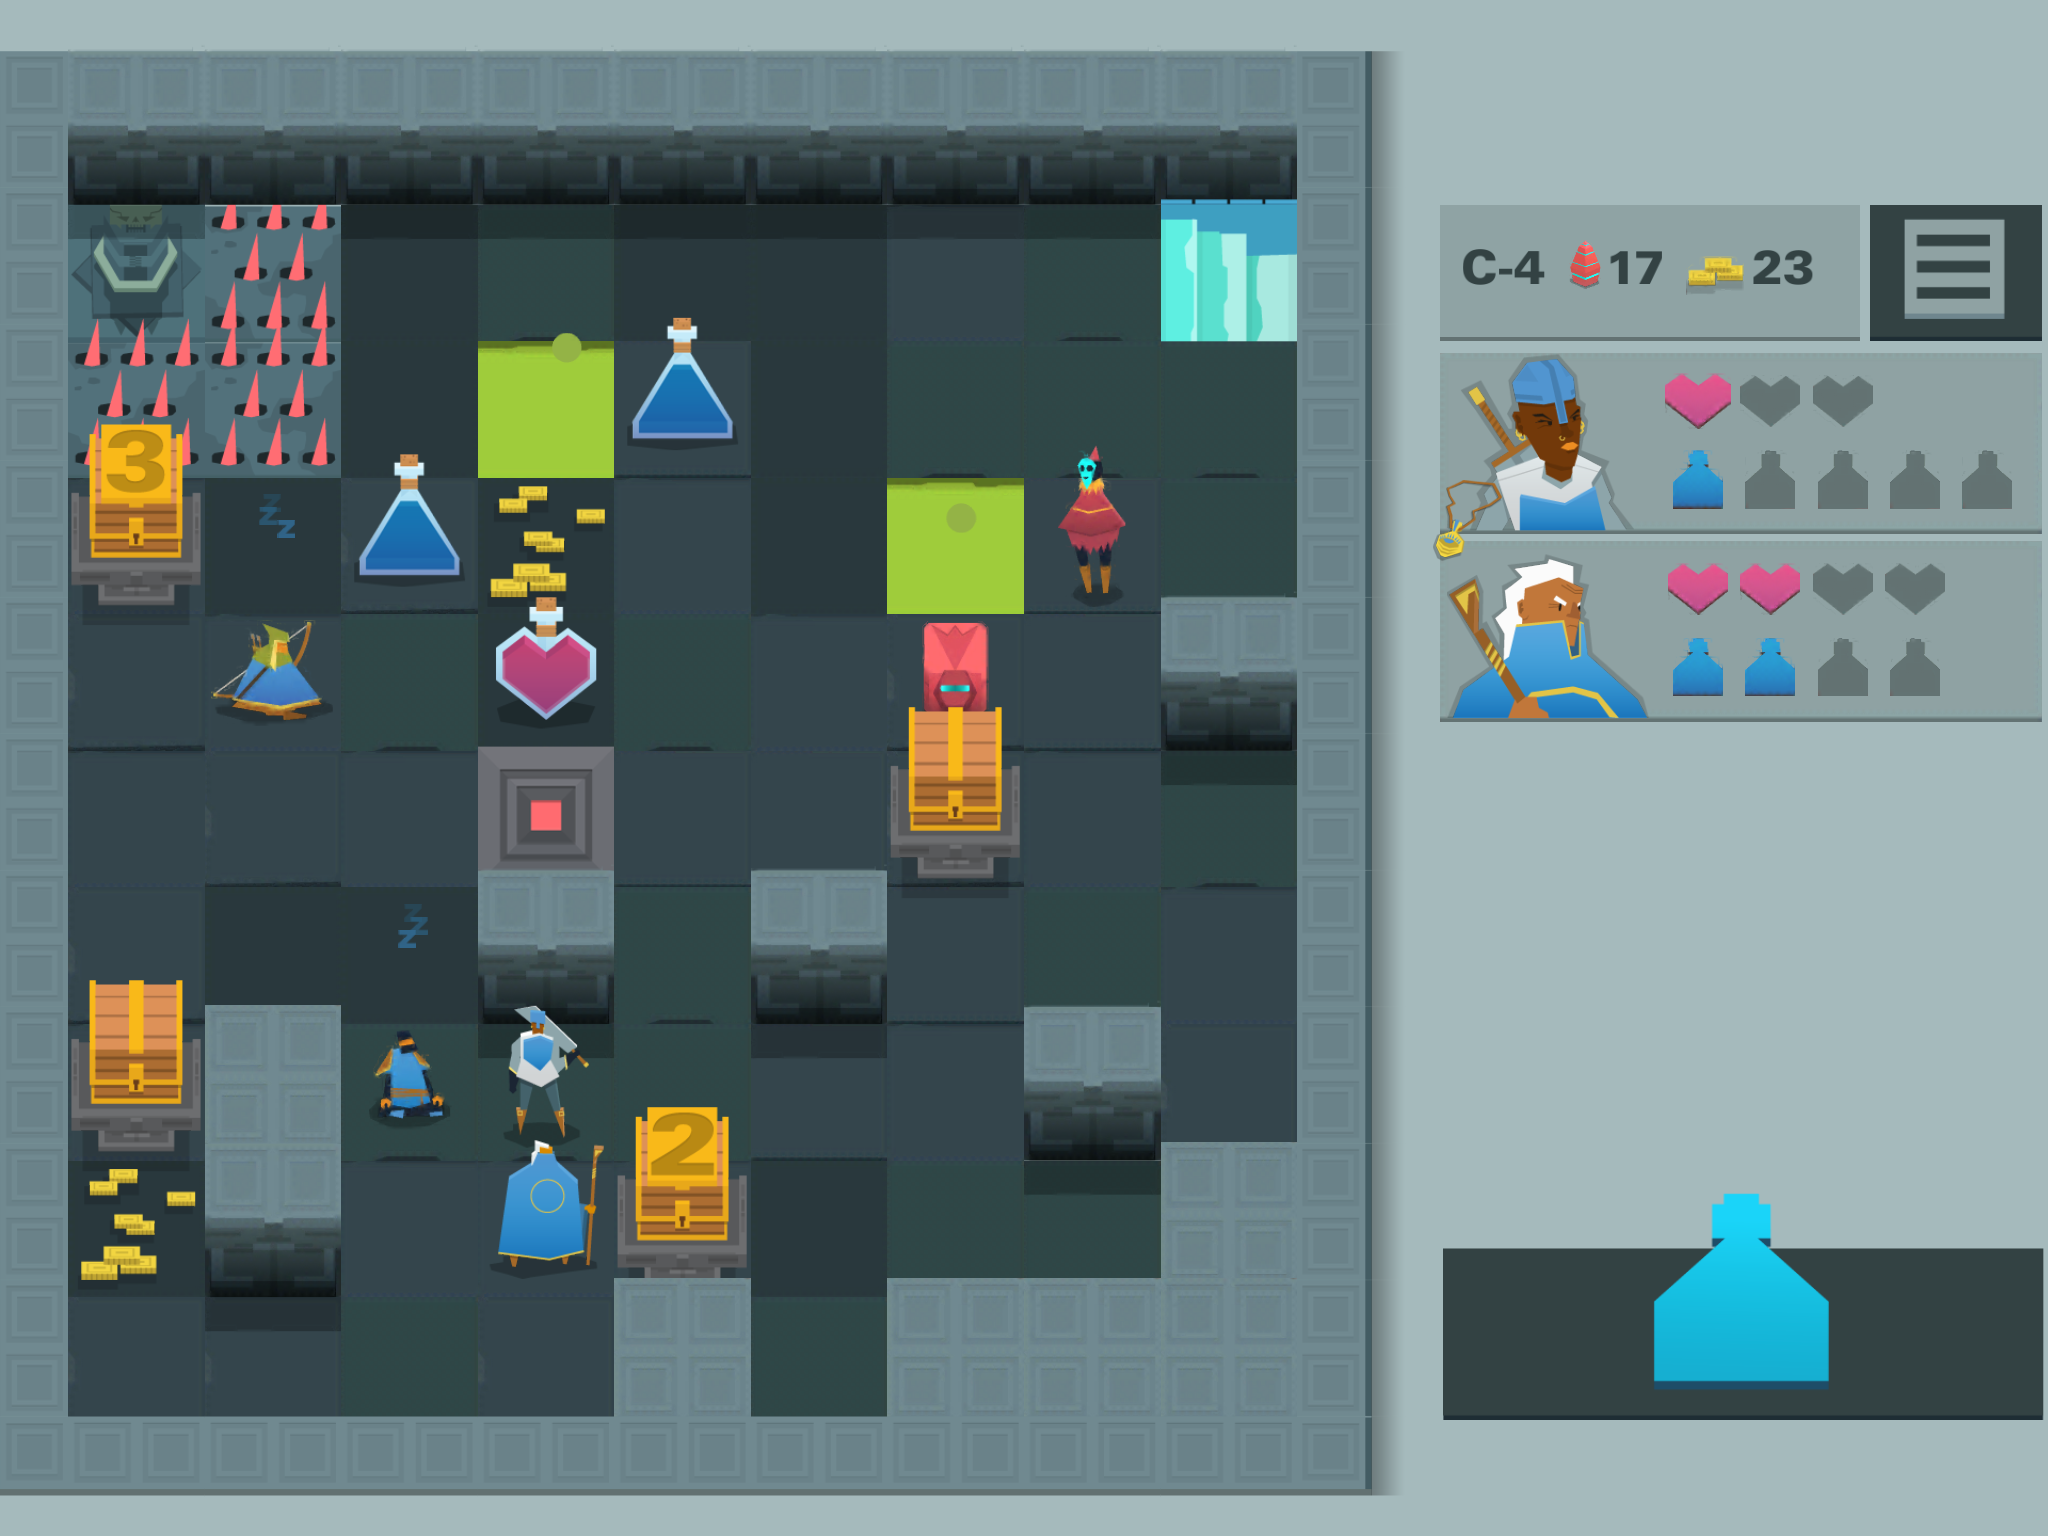 A Hard Roguelike That Feels Better On Mobile Than PC